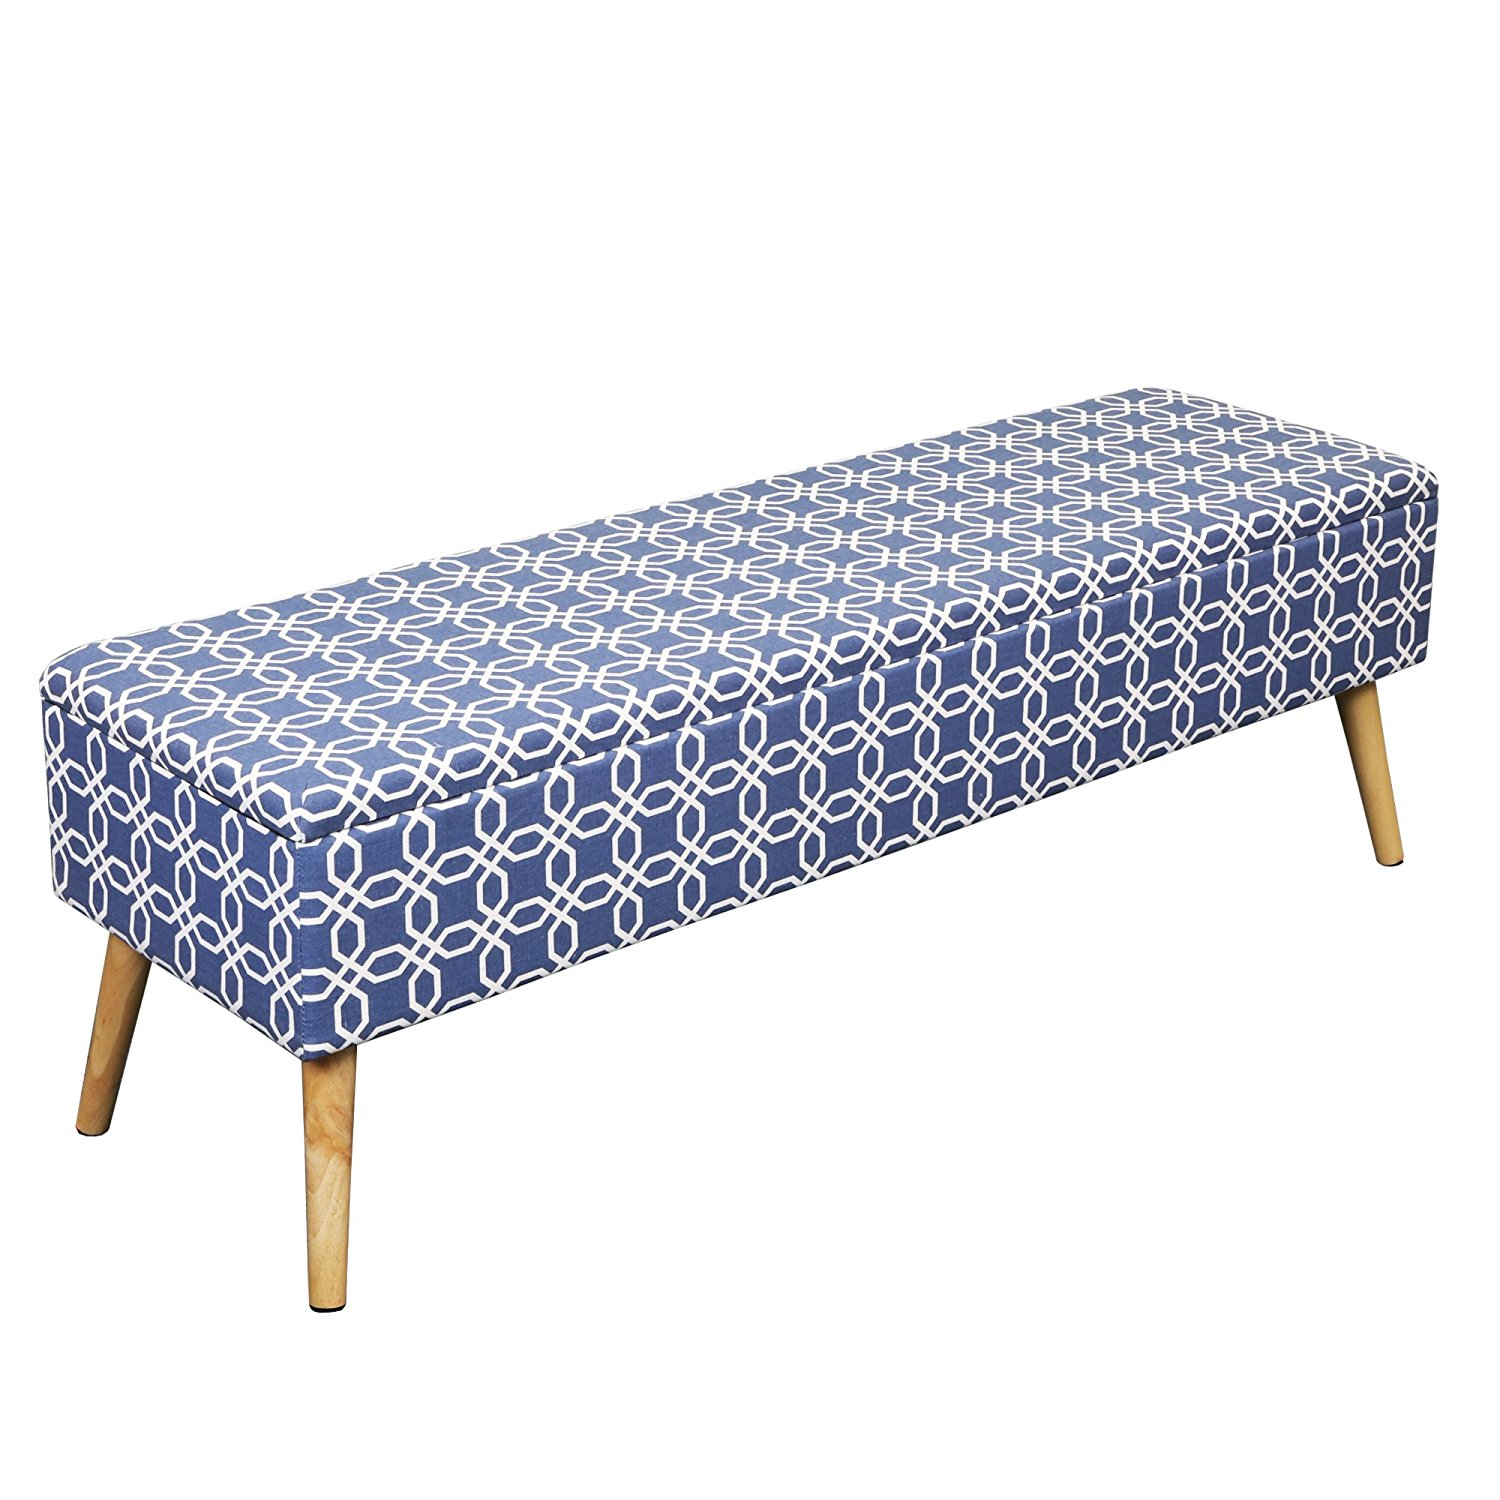 Otto U0026 Ben Easy Lift Top Upholstered Ottoman Storage Bench, Multiple Colors